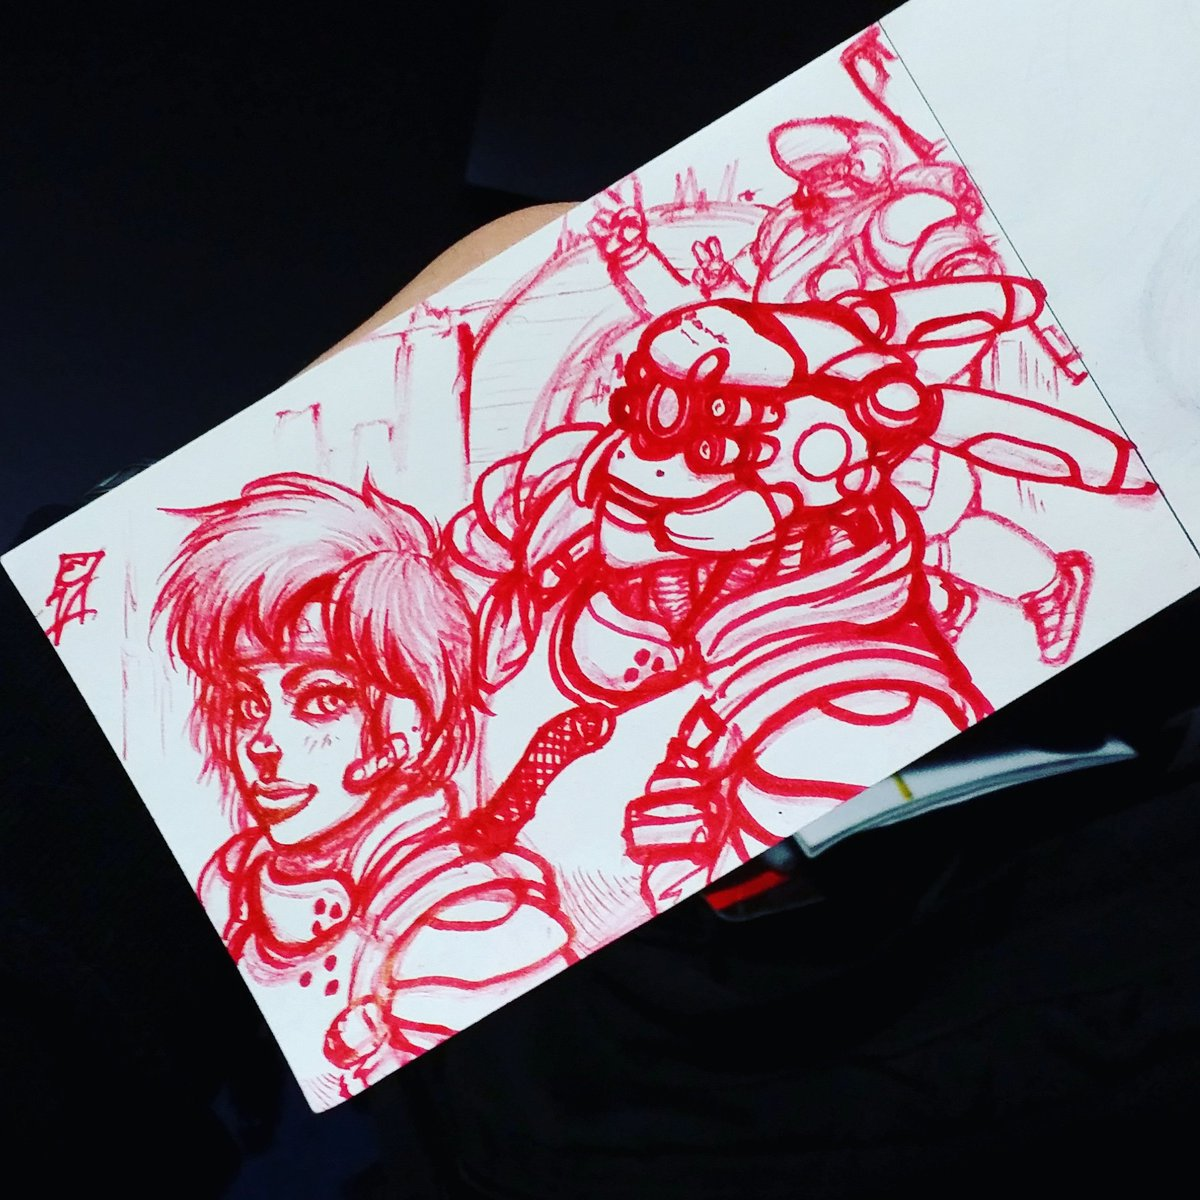 Eric L Vargas Commission S Closed On Twitter I Really Am Remiss Not Doing Any Appleseed Fanart Until Now It Was One Of The First Manga Series I Ever Owned Needless To Say